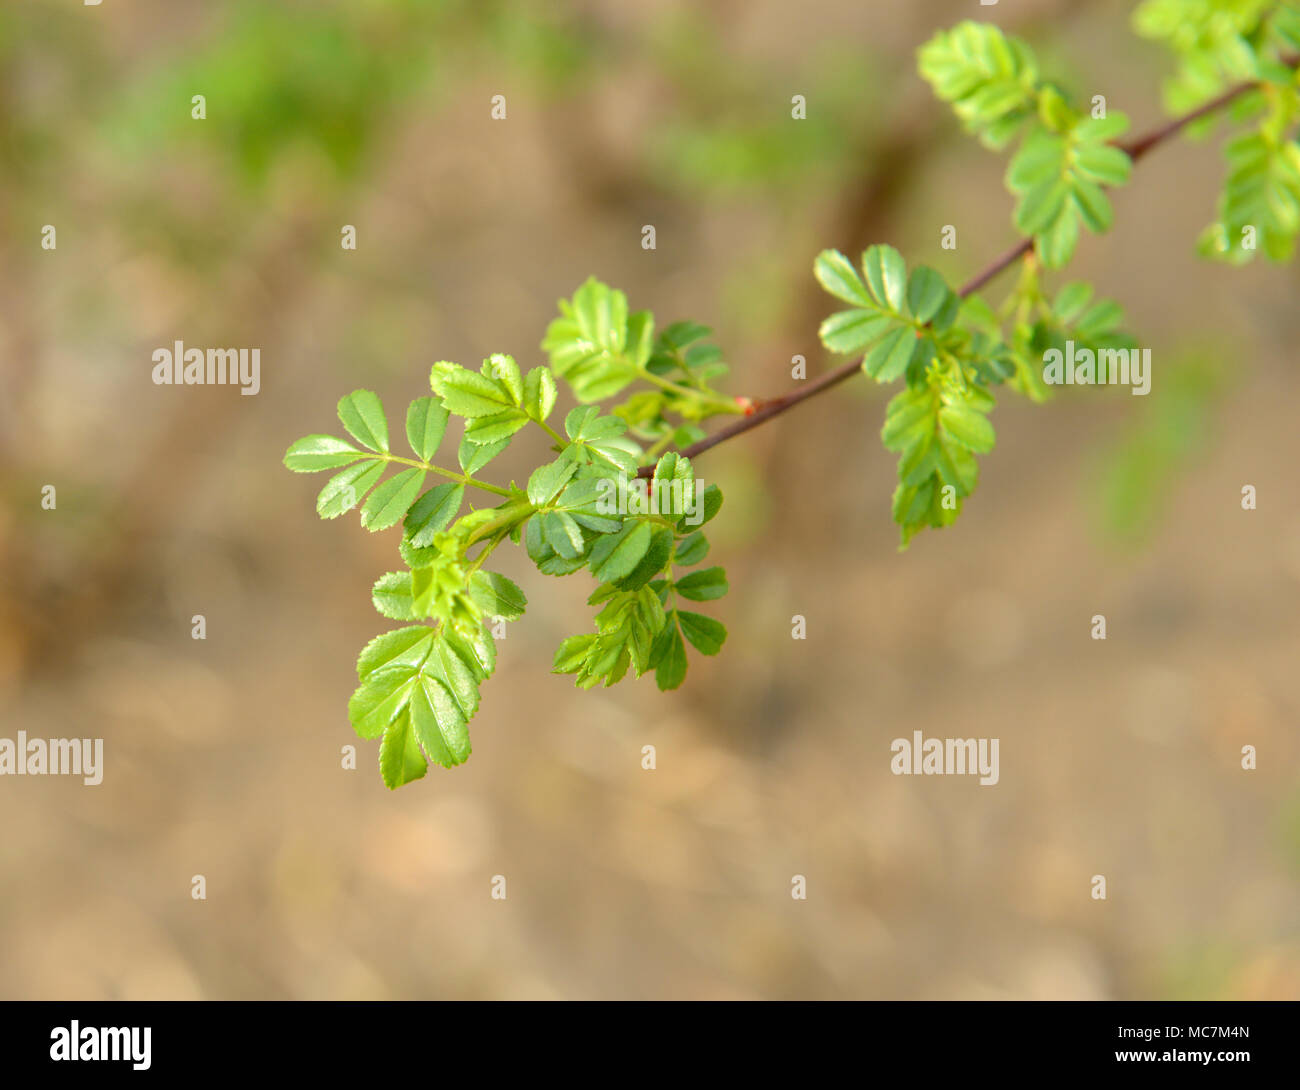 Leaves emerge from a branch tip on a shrub in Beijing, China - Stock Image